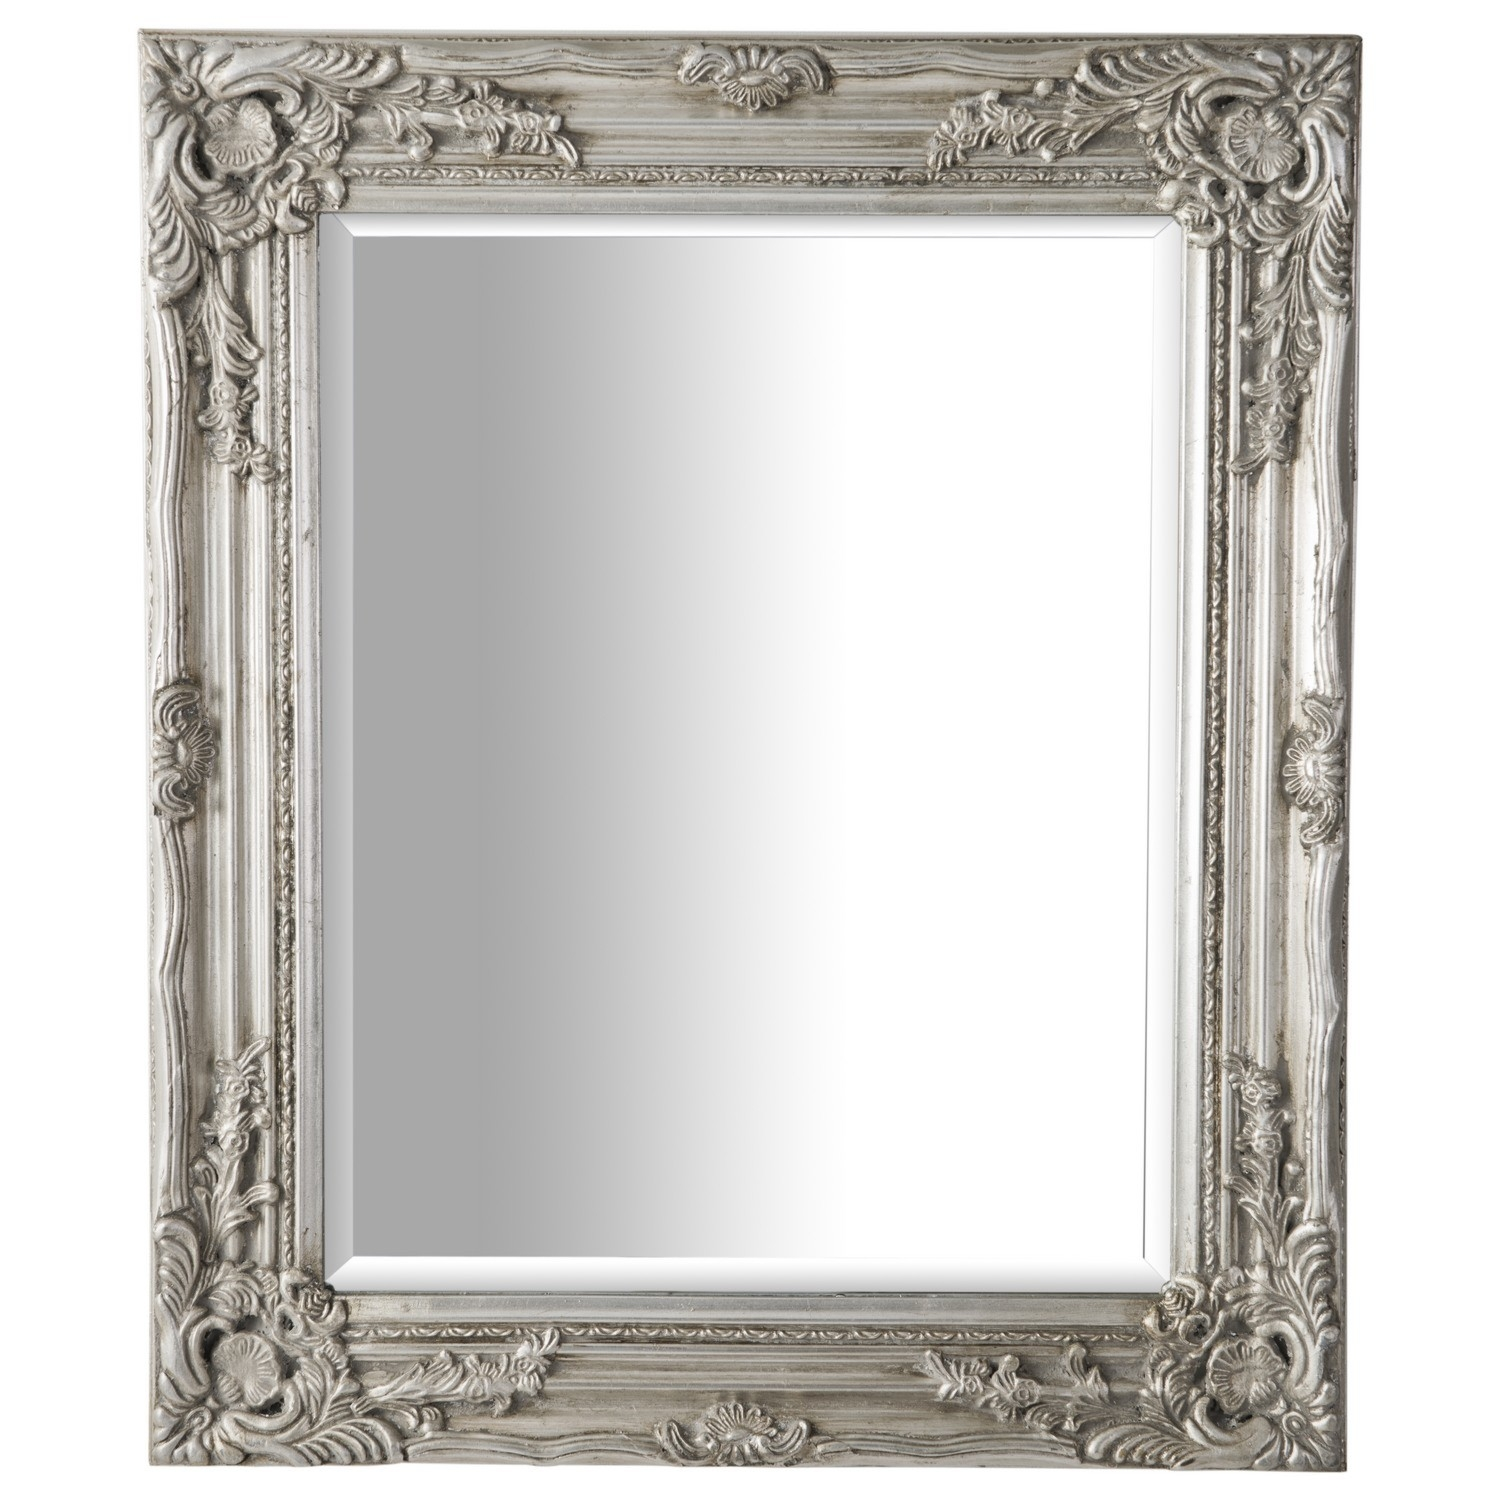 Antique Ornate Mirror Silver Intended For Silver Ornate Mirror (Image 3 of 15)